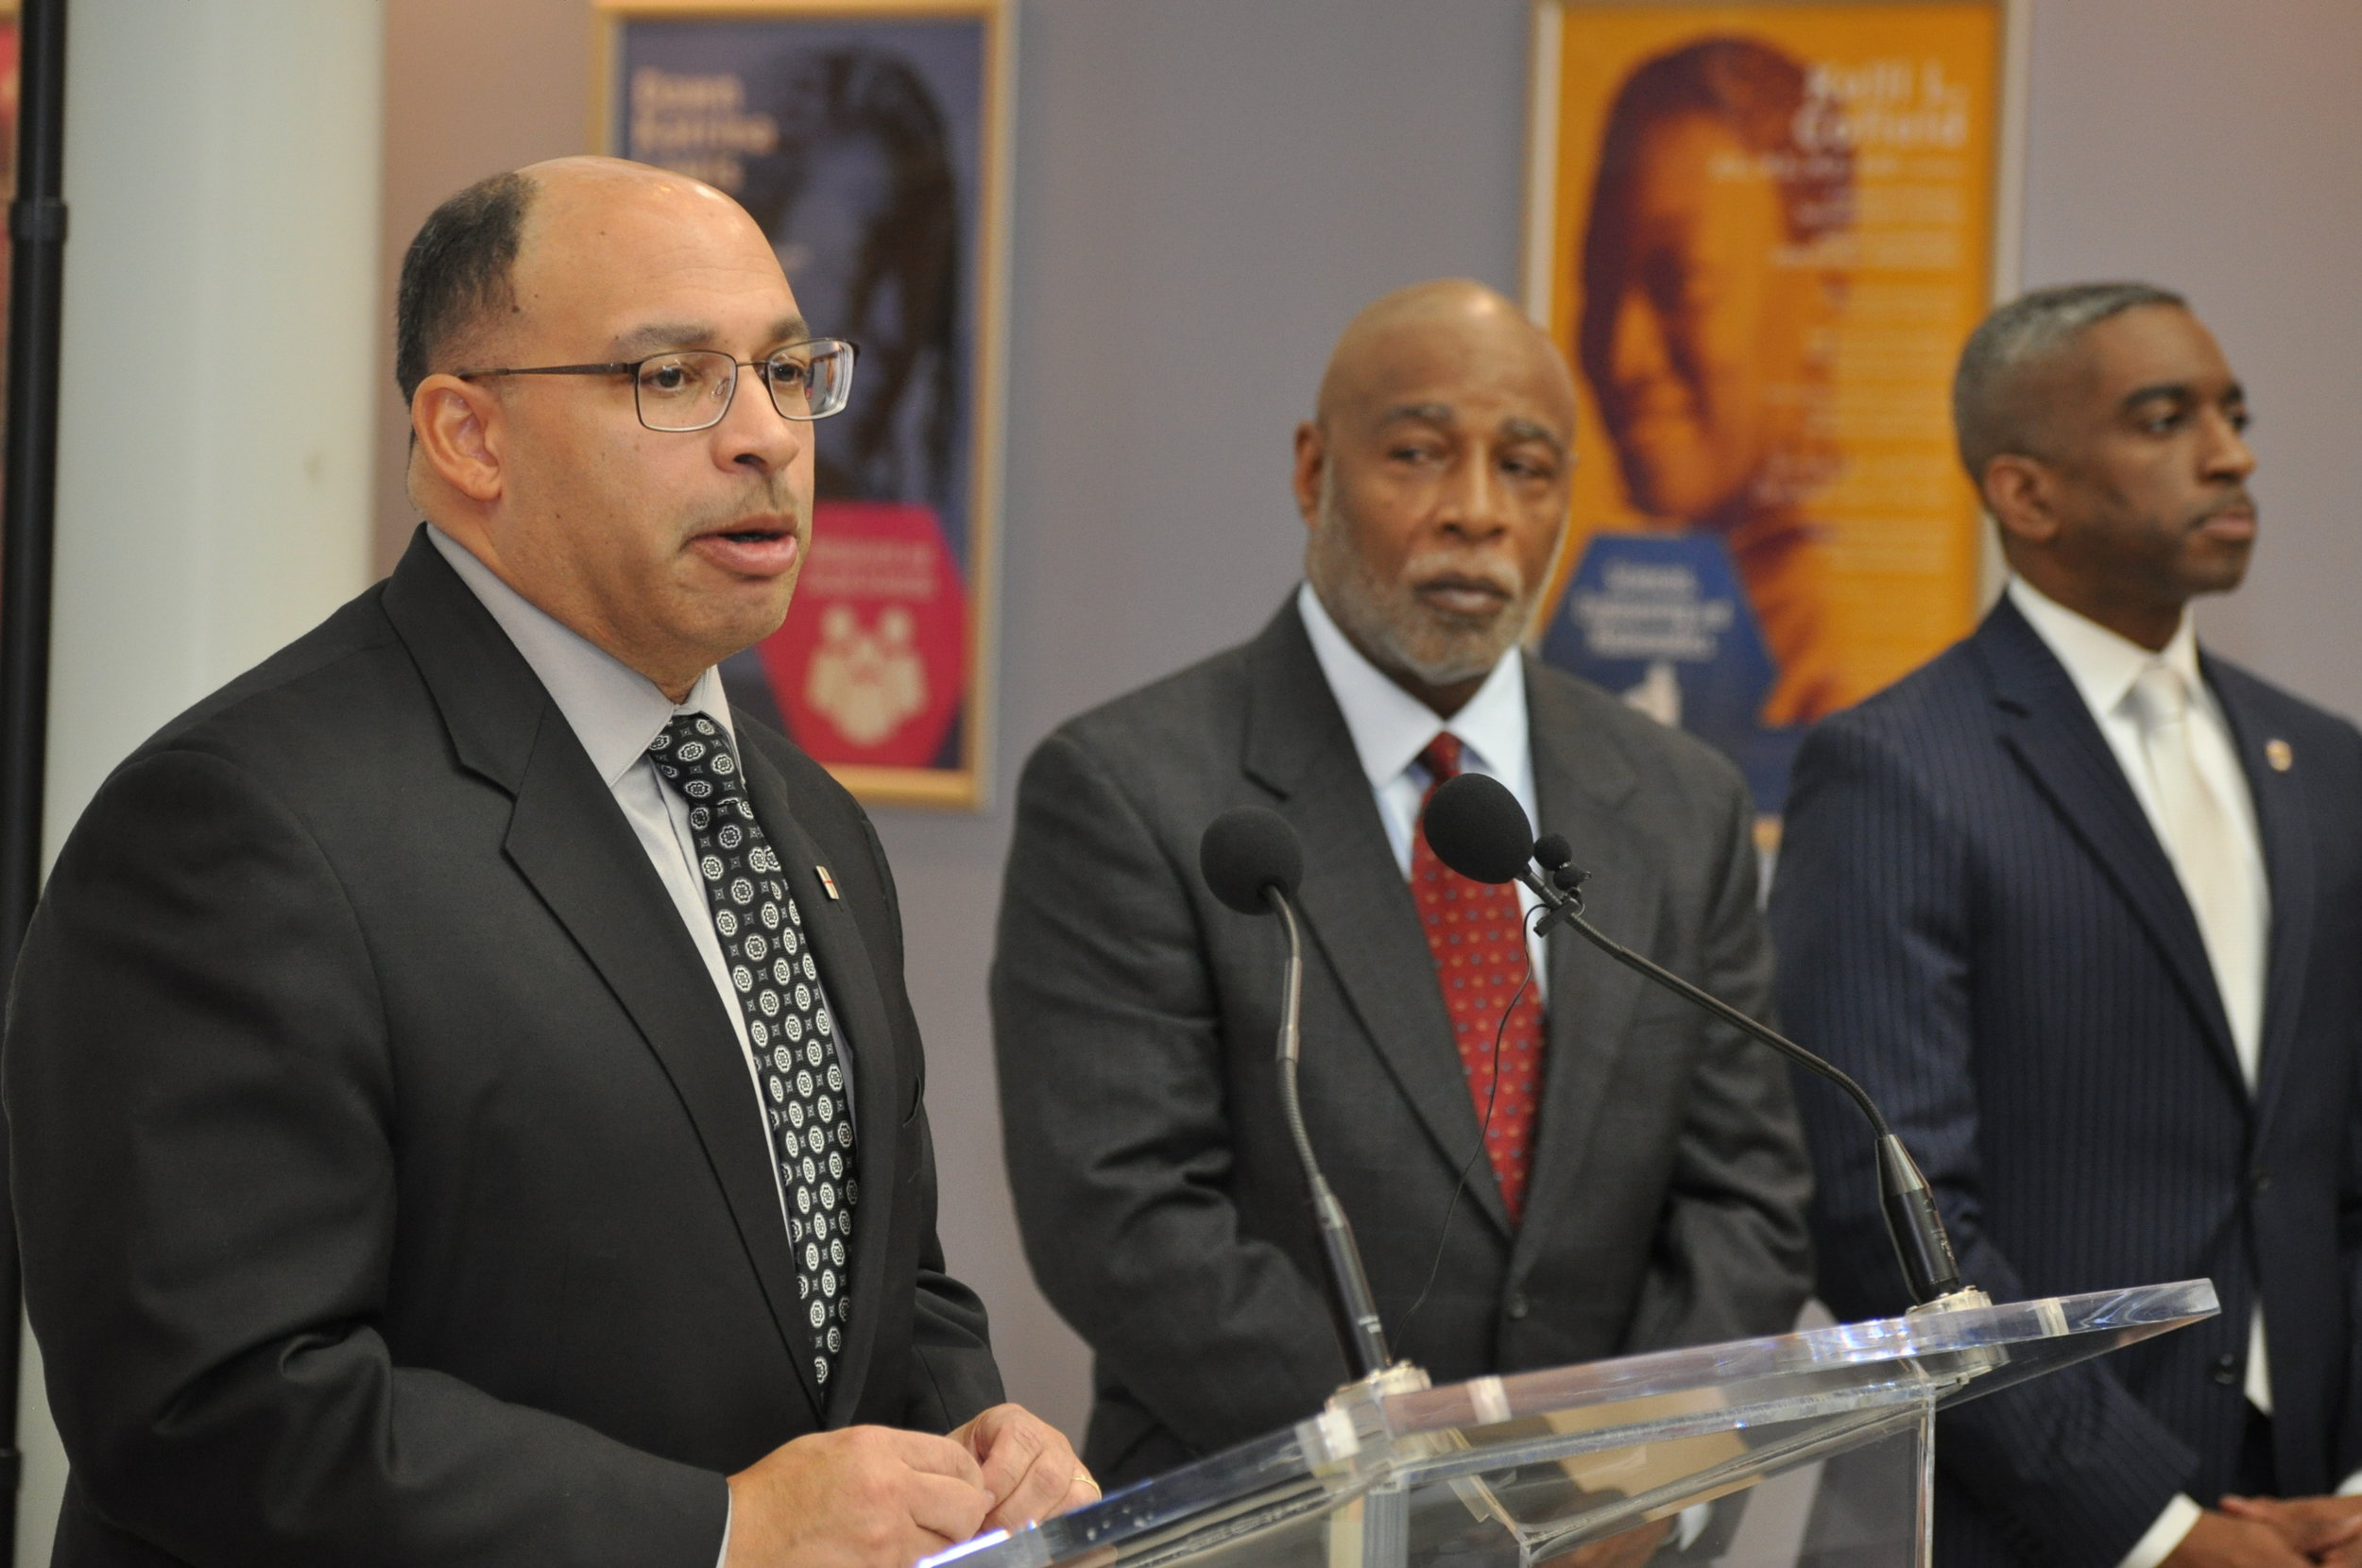 Prince George's County Council Chair Todd Turner (D-Dist. 4)  flanked by Vice Chair Rodney Streeter (D-Dist. 7) and At-Large Councilmember Mel Franklin (D). //  PHOTO: RAOUL DENNIS PRINCE GEORGE'S SUITE MAGAZINE & MEDIA.